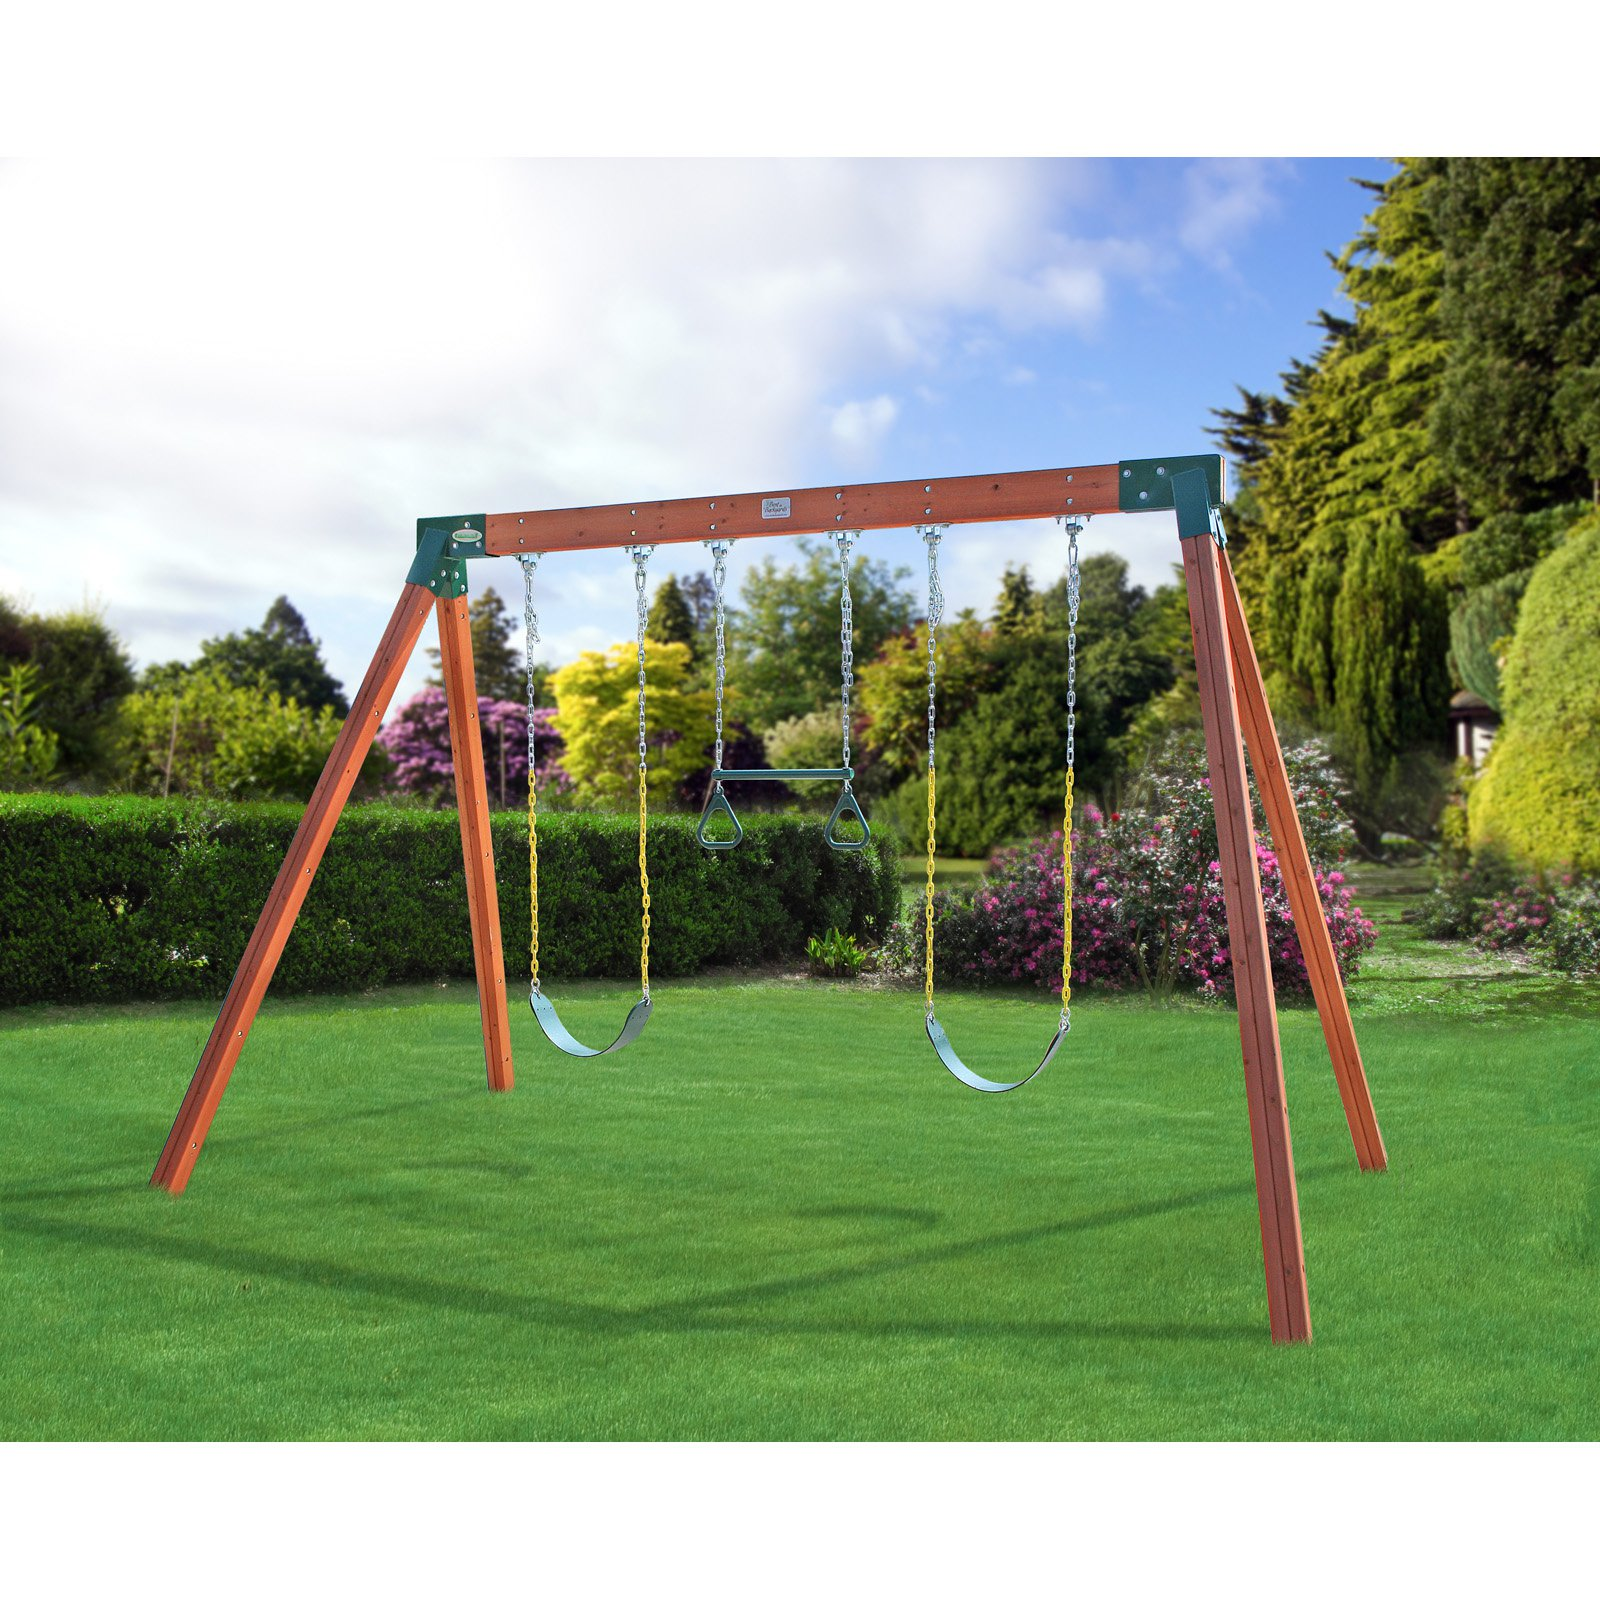 Eastern Jungle Gym Classic A-Frame Cedar Swing Set with Lumber